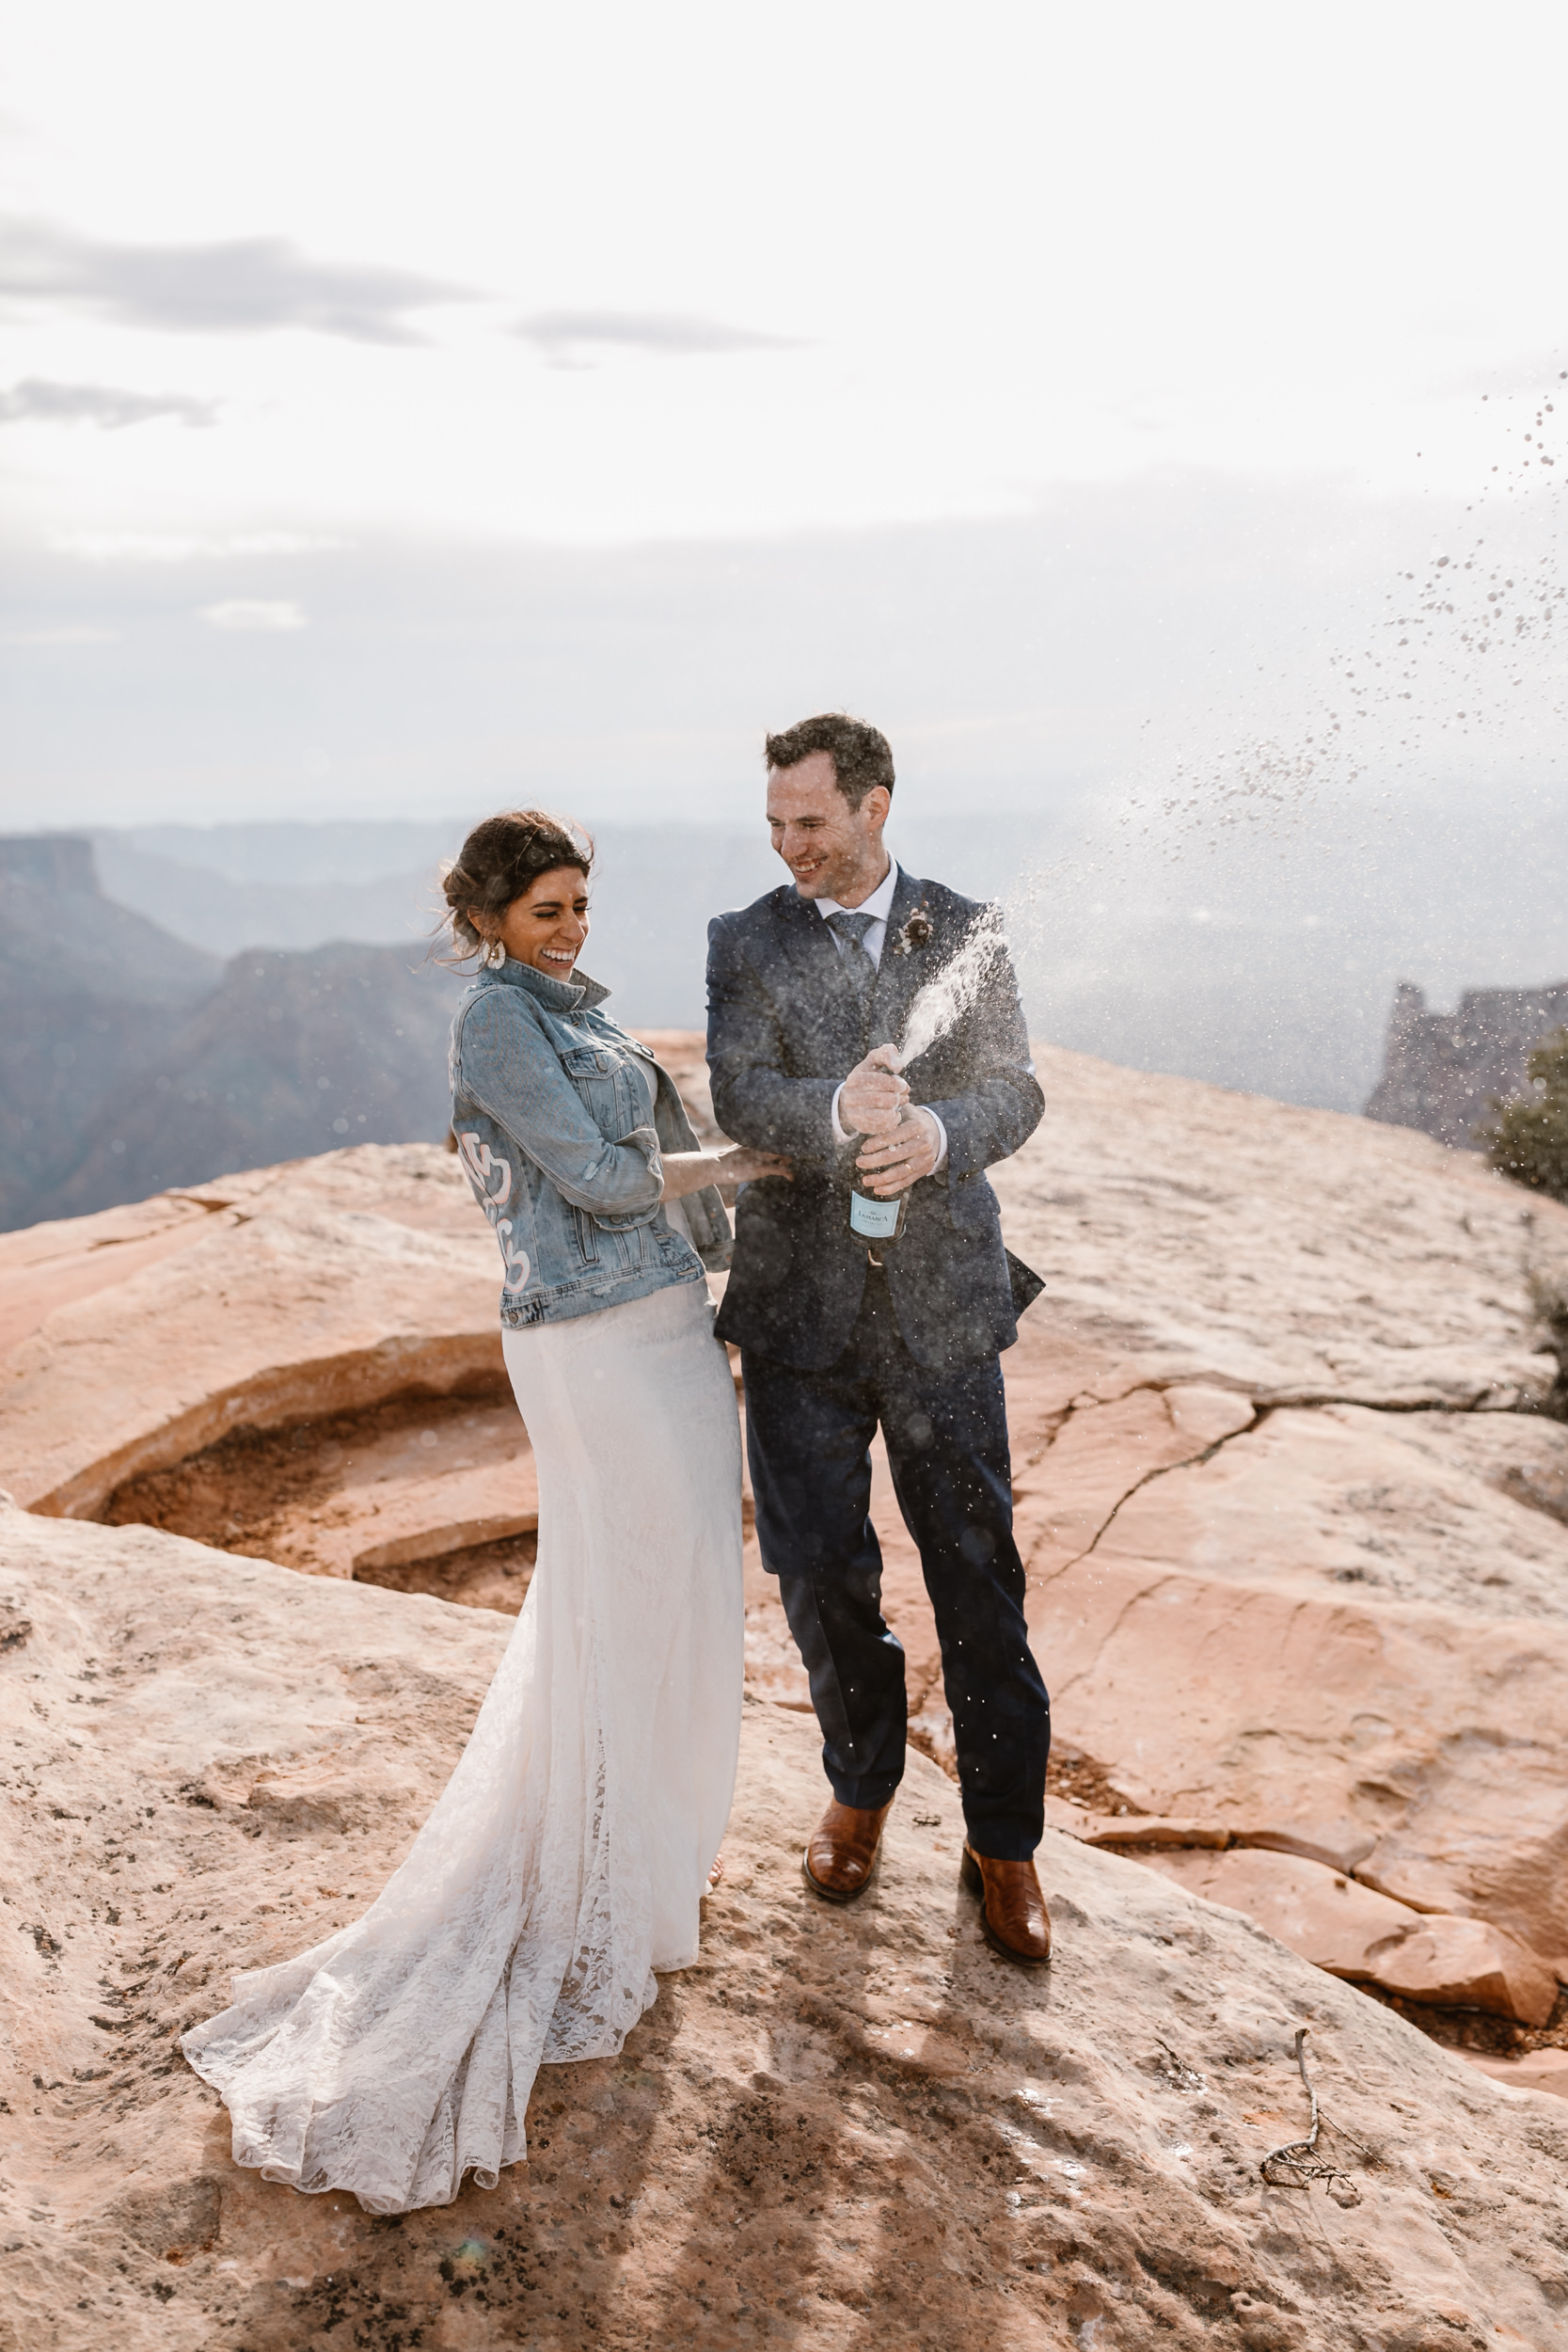 The Hearnes Adventure Wedding in Moab Utah Wedding picture champagne